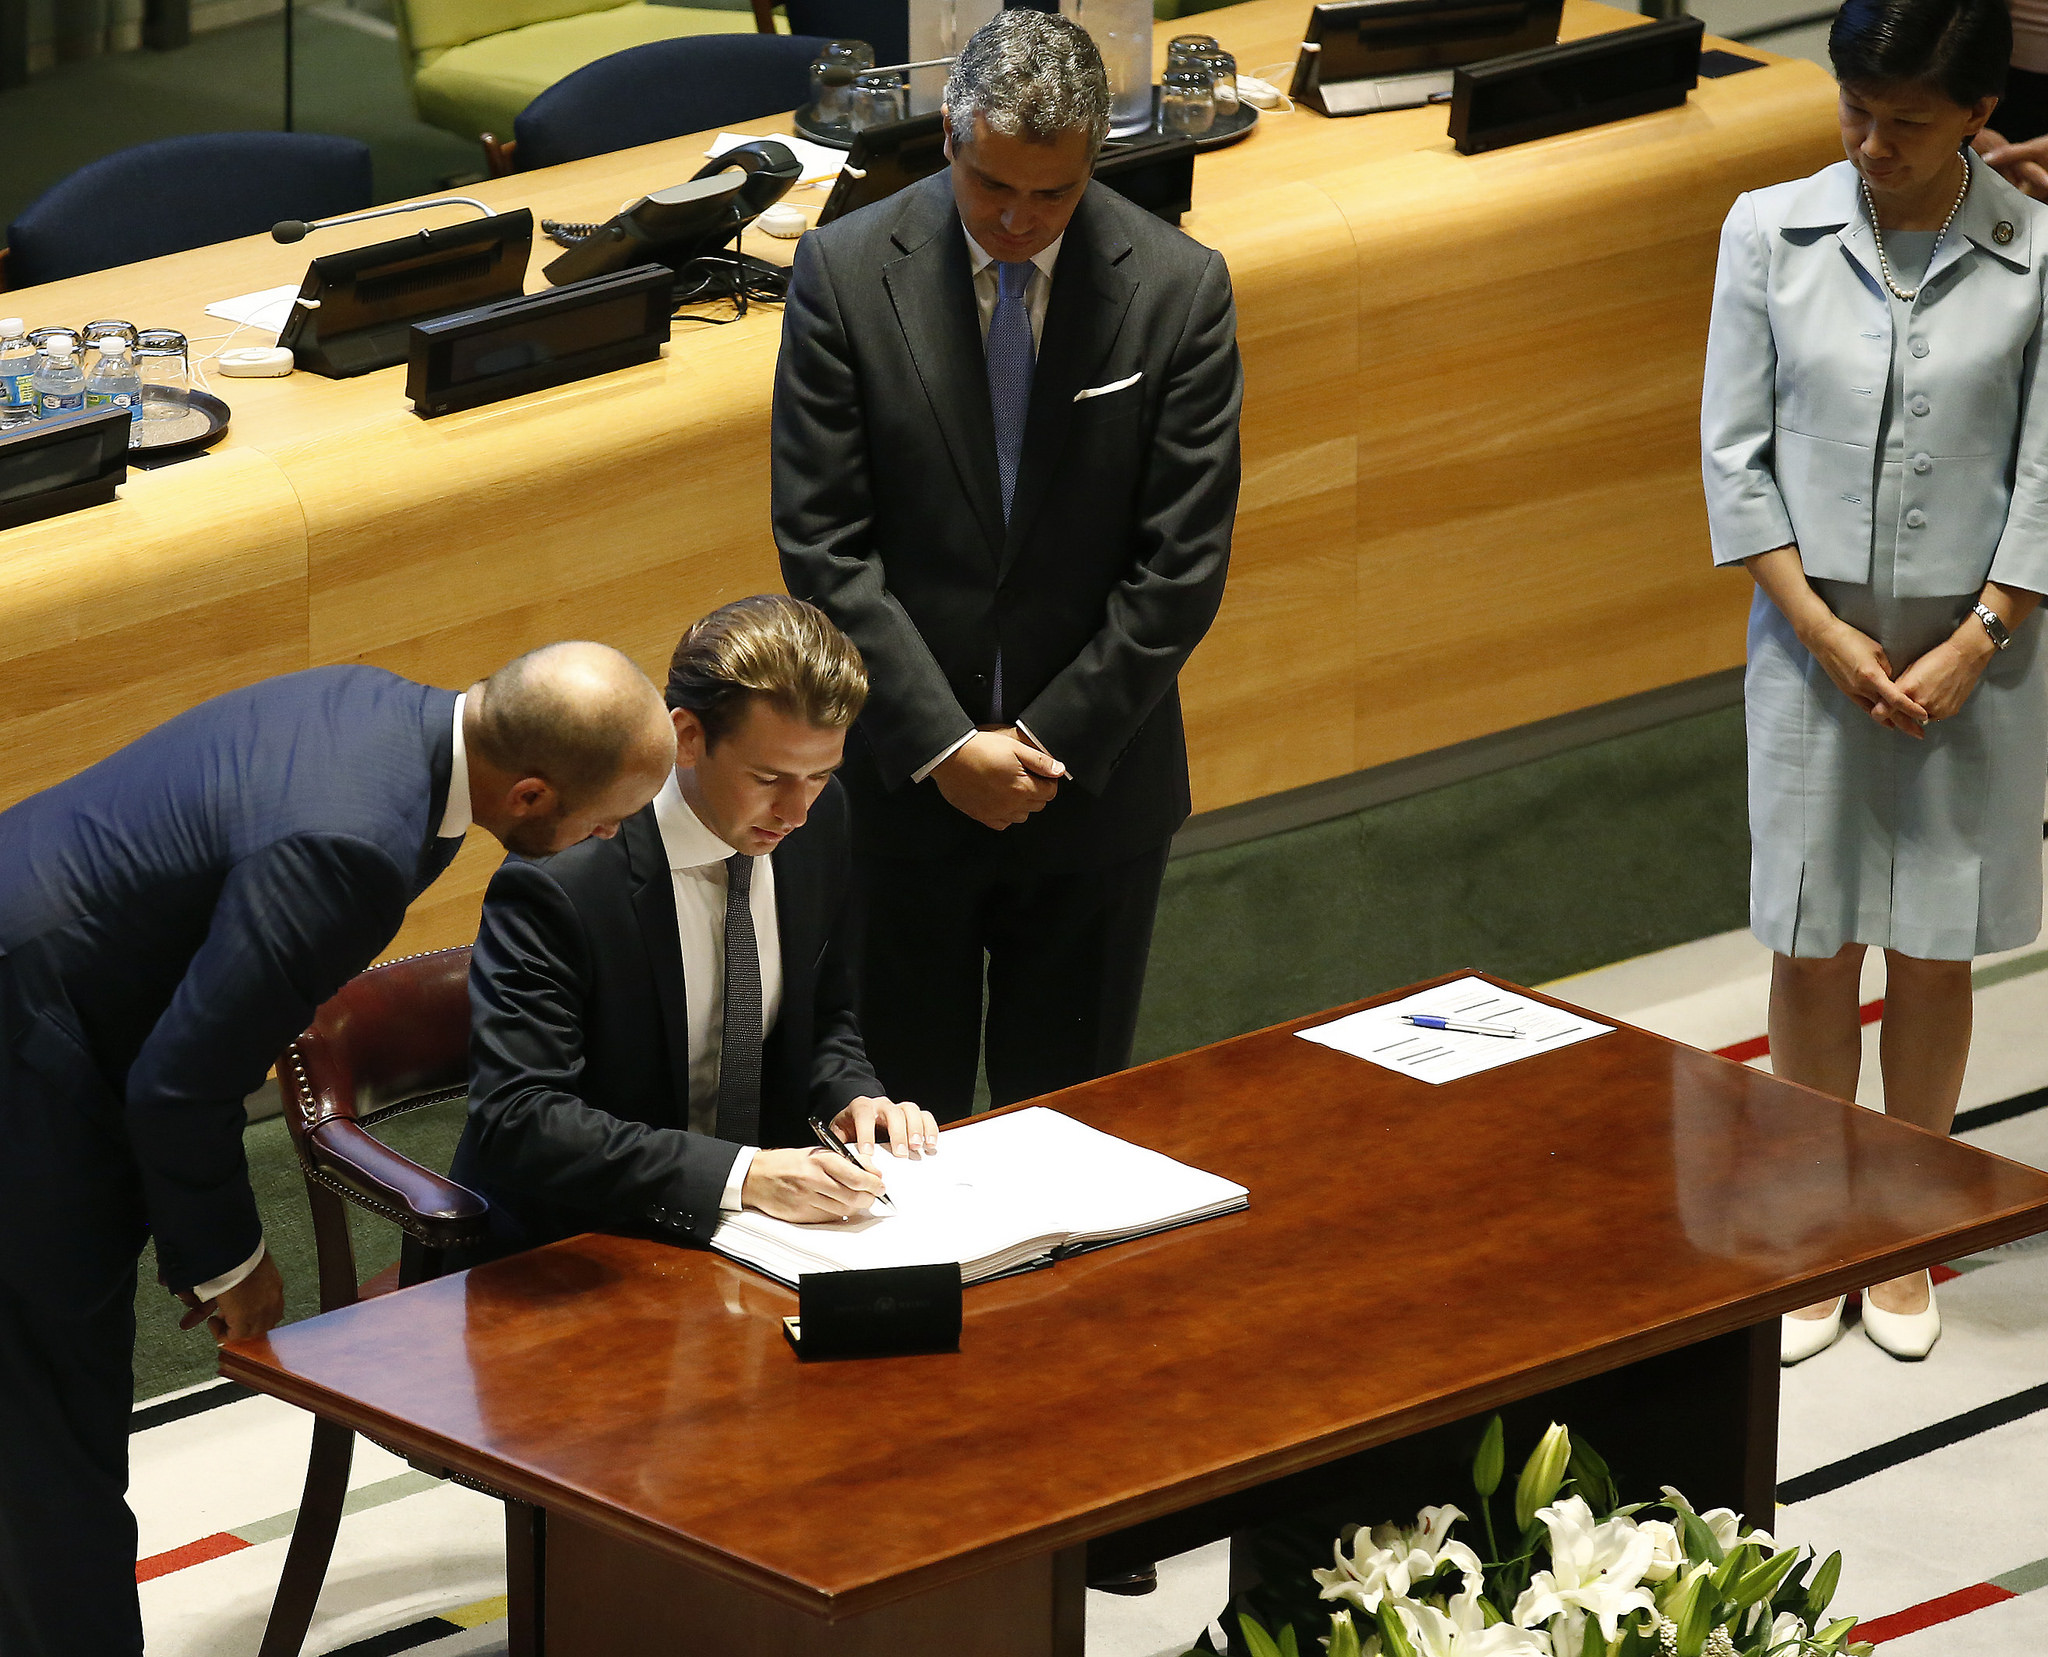 Foreign Minister Sebastian Kurz signs Treaty on the Prohibition of Nuclear Weapons during the UN General Assembly meeting in New York on September 20, 2017, Photo: Dragan Tatic